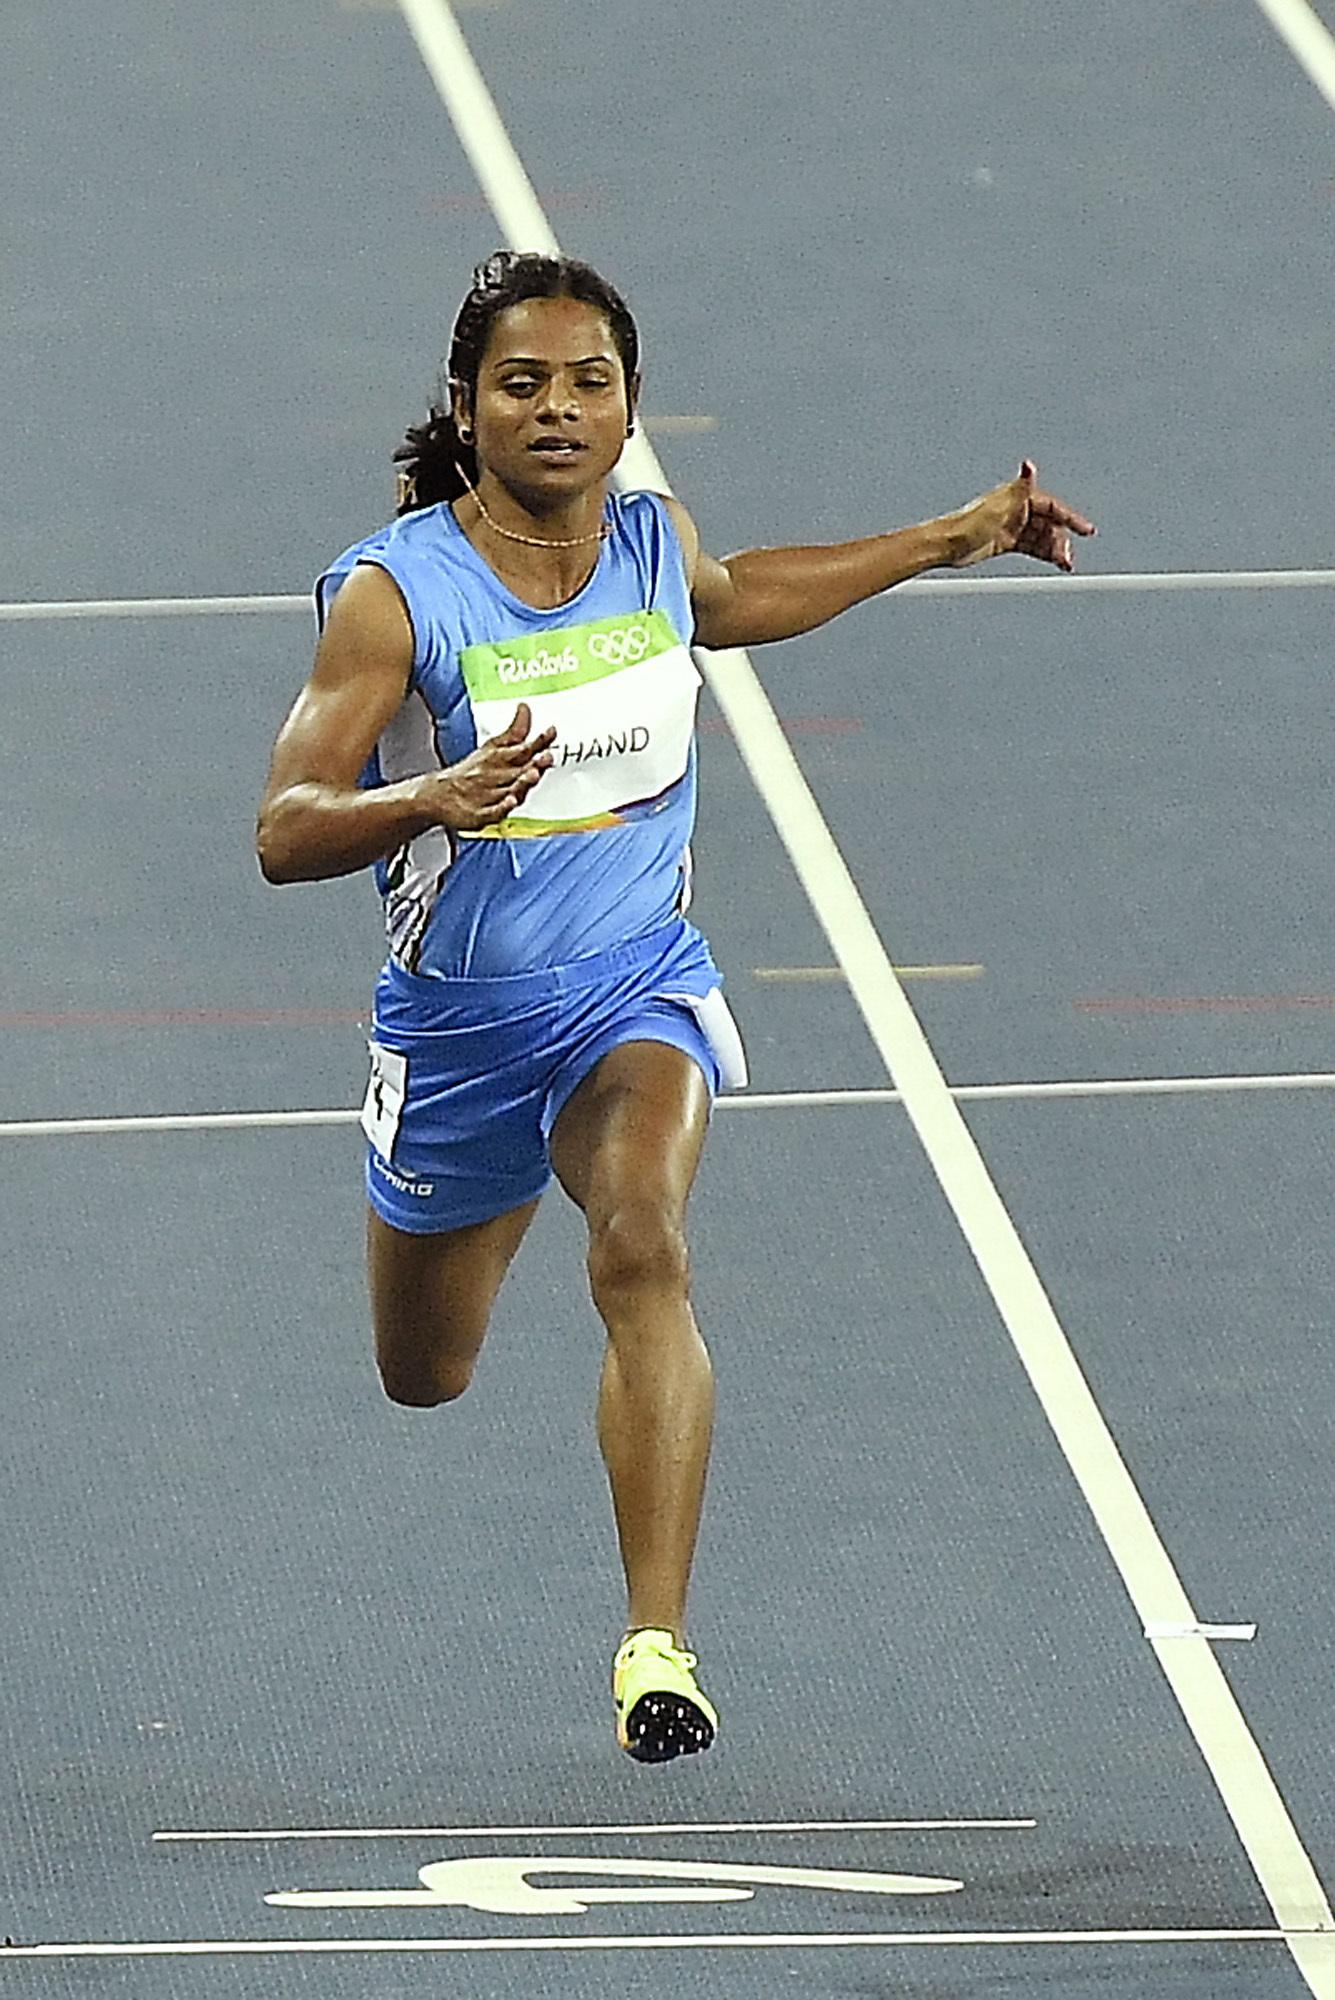 Indian sprinter Dutee Chand is another who has challenged IAAF rulings